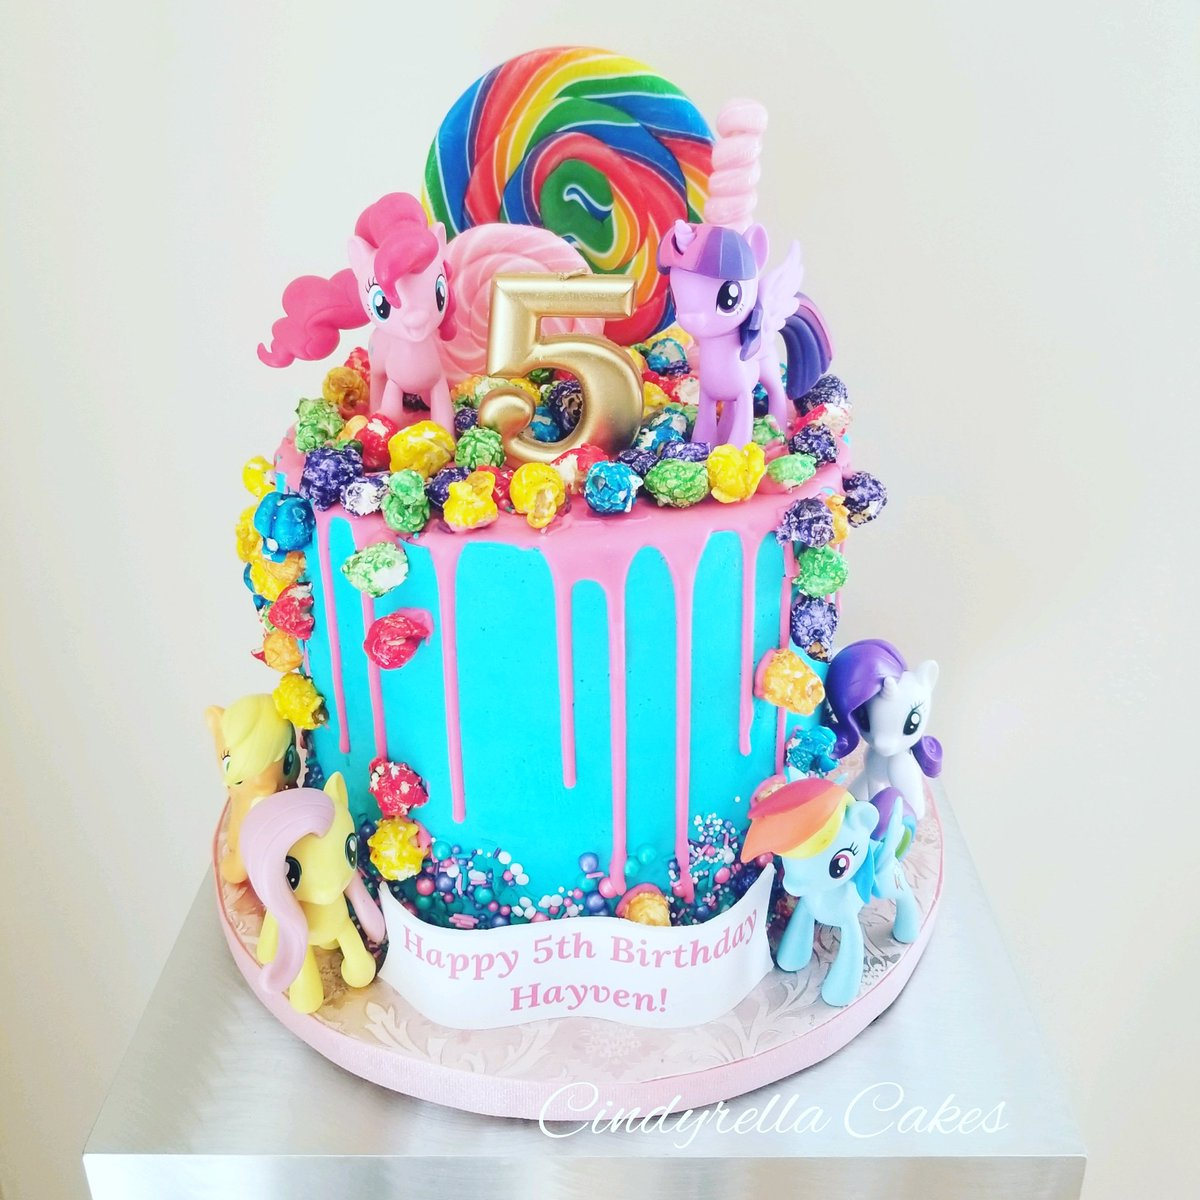 Cindyrella Cakes On Twitter My Little Pony Birthday Cake